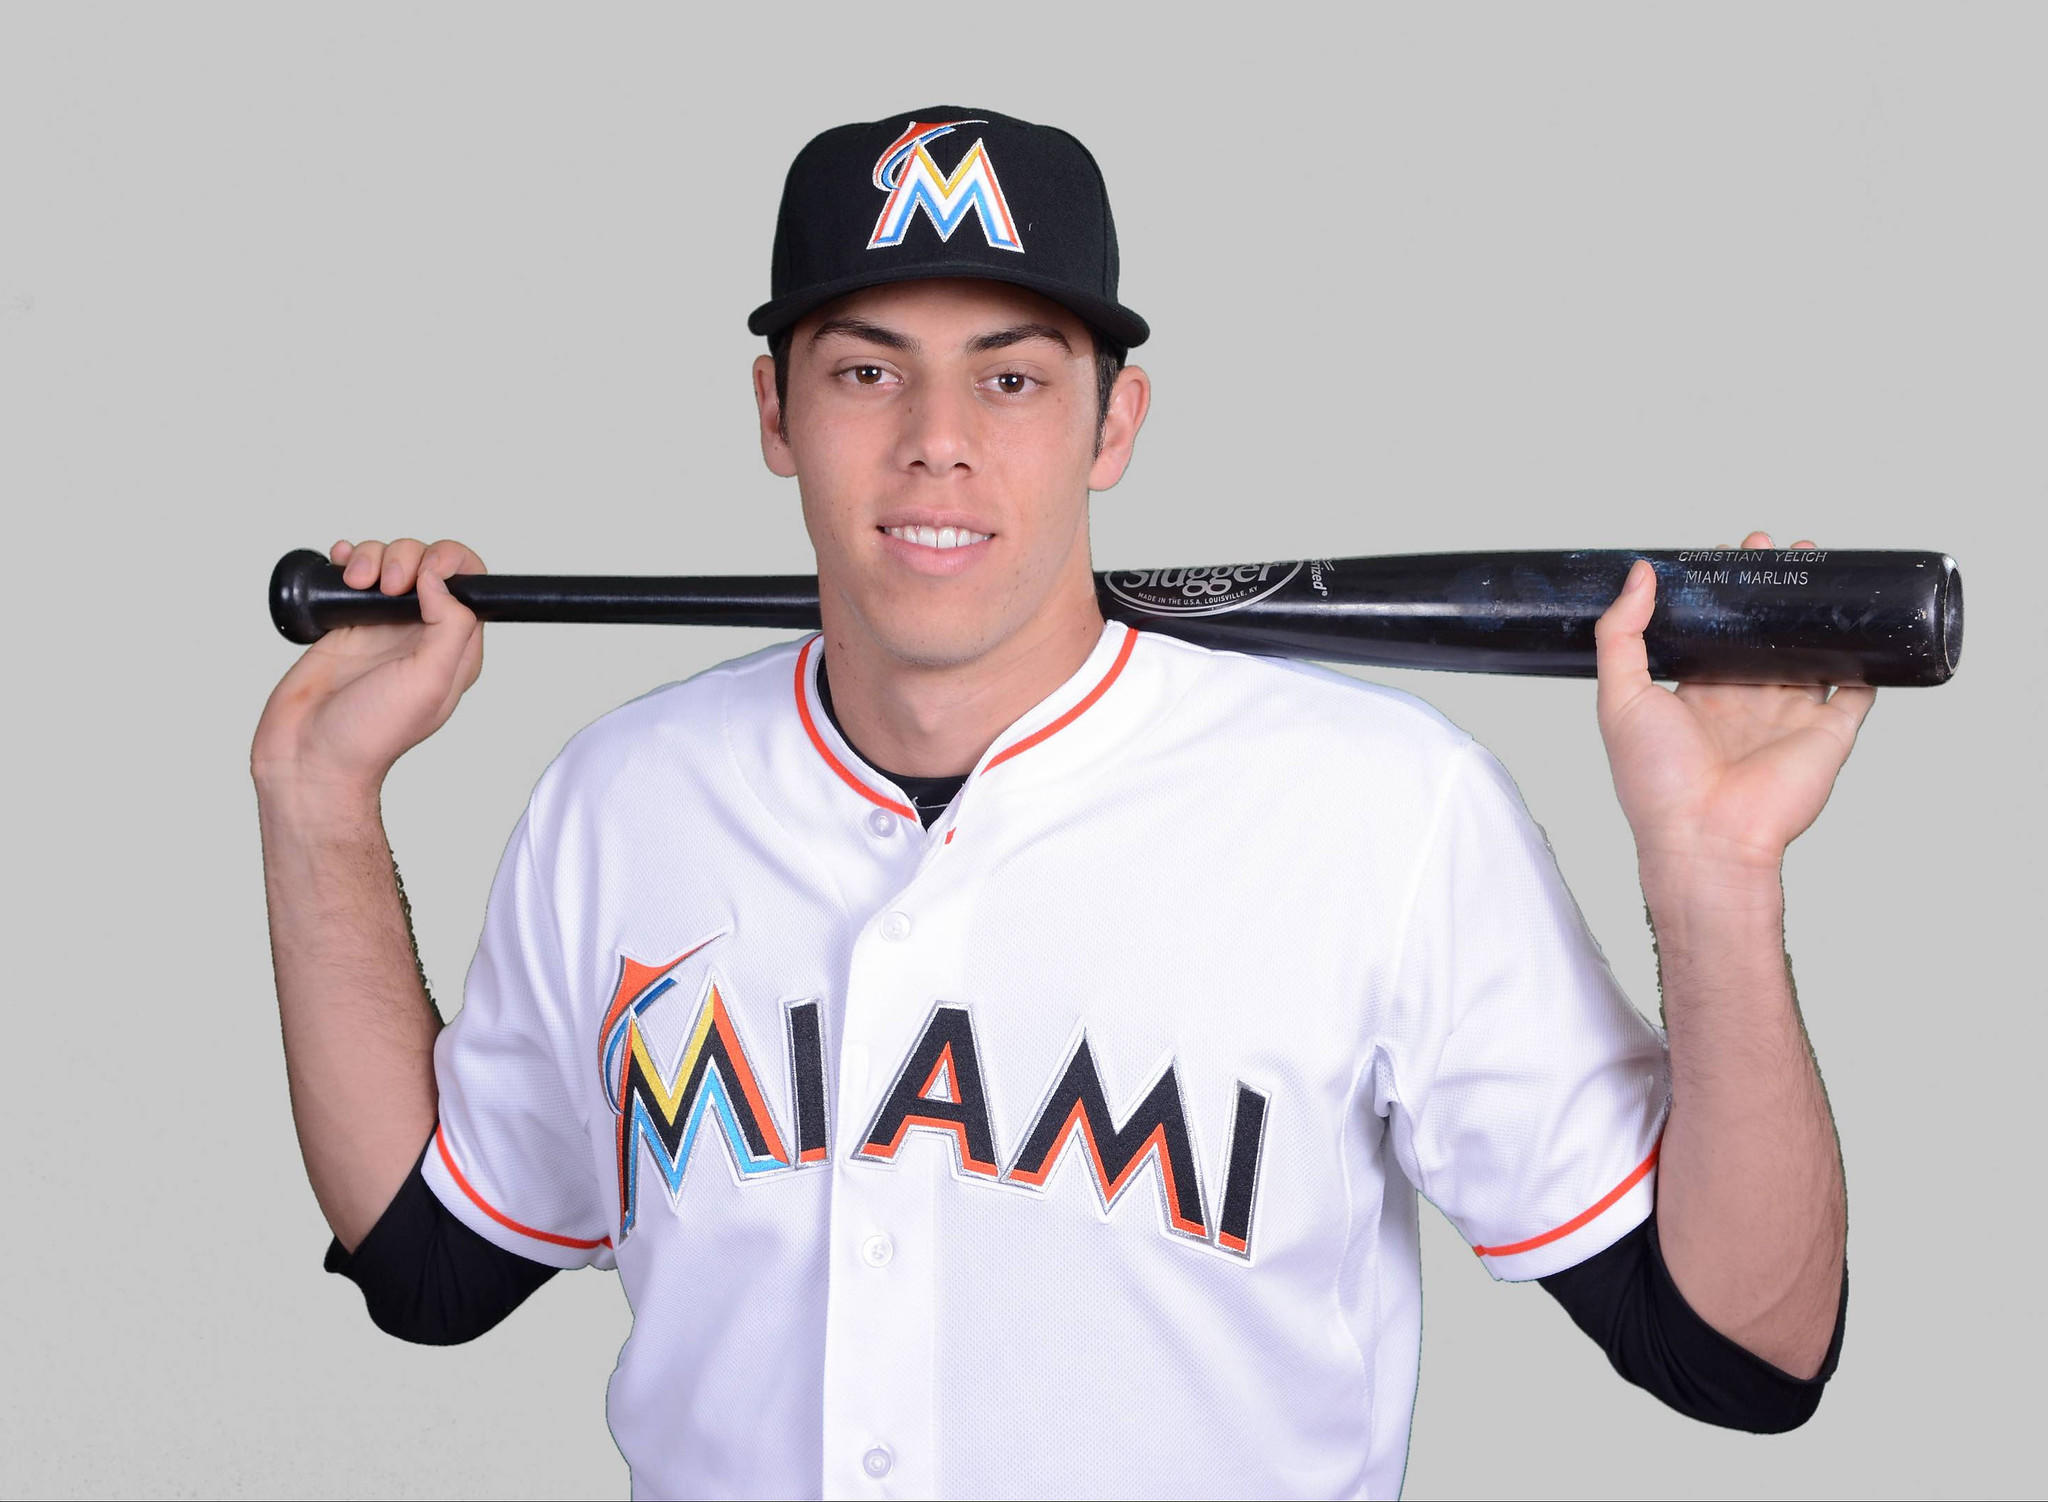 Miami Marlins outfielder Christian Yelich chose baseball despite coming from a football family.